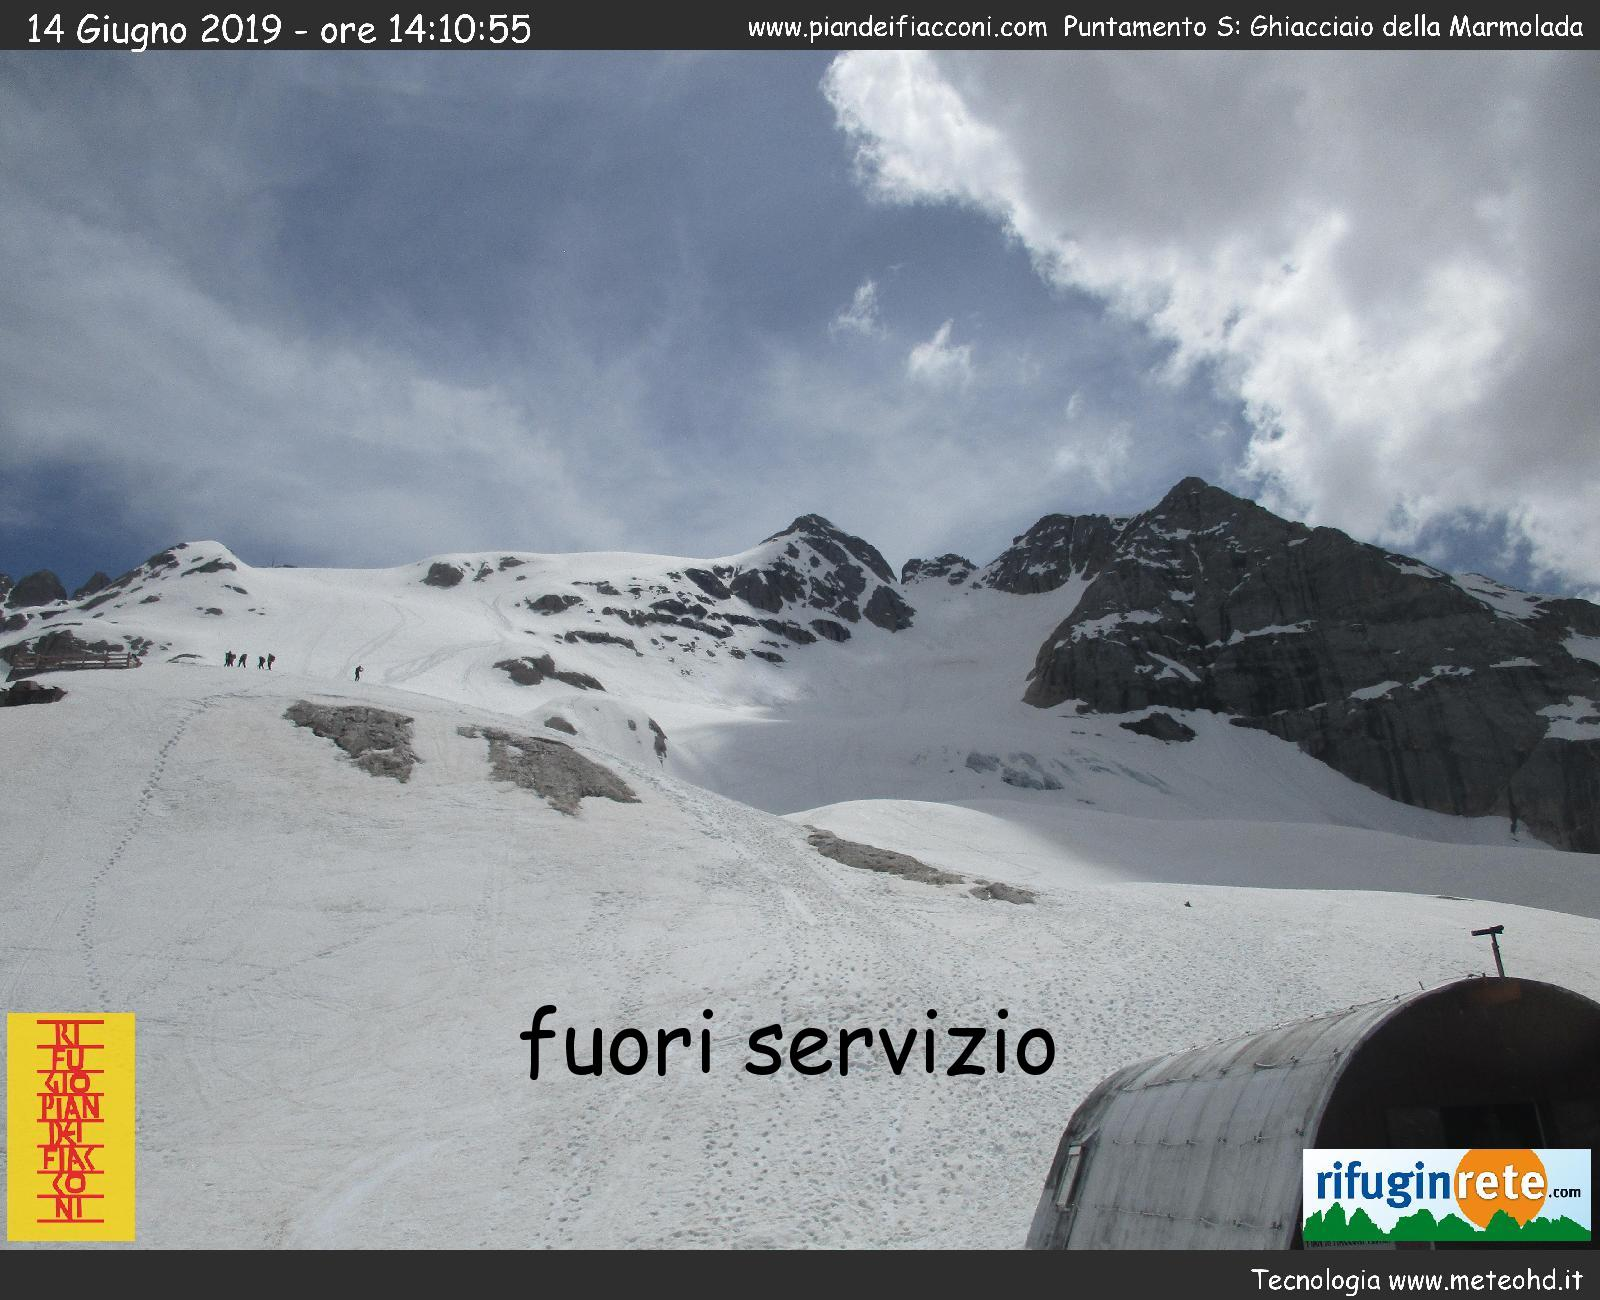 Webcam Ghiacciaio Marmolada